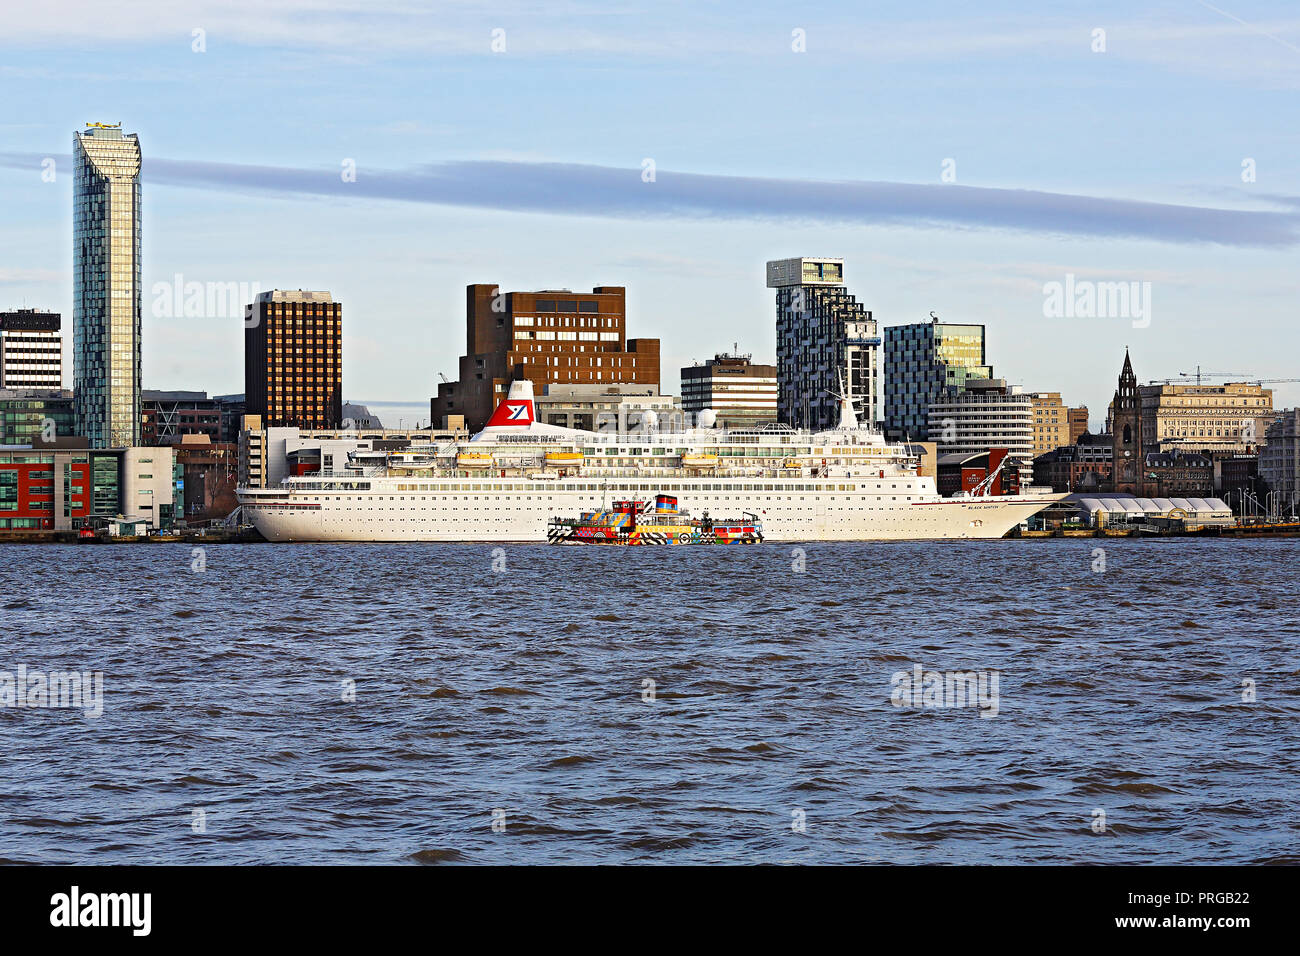 Mersey Ferry Snowdrop sailing past Cruise Ship Black Watch moored at the Pier Head landing stage on the River Mersey Liverpool UK December 51101 - Stock Image